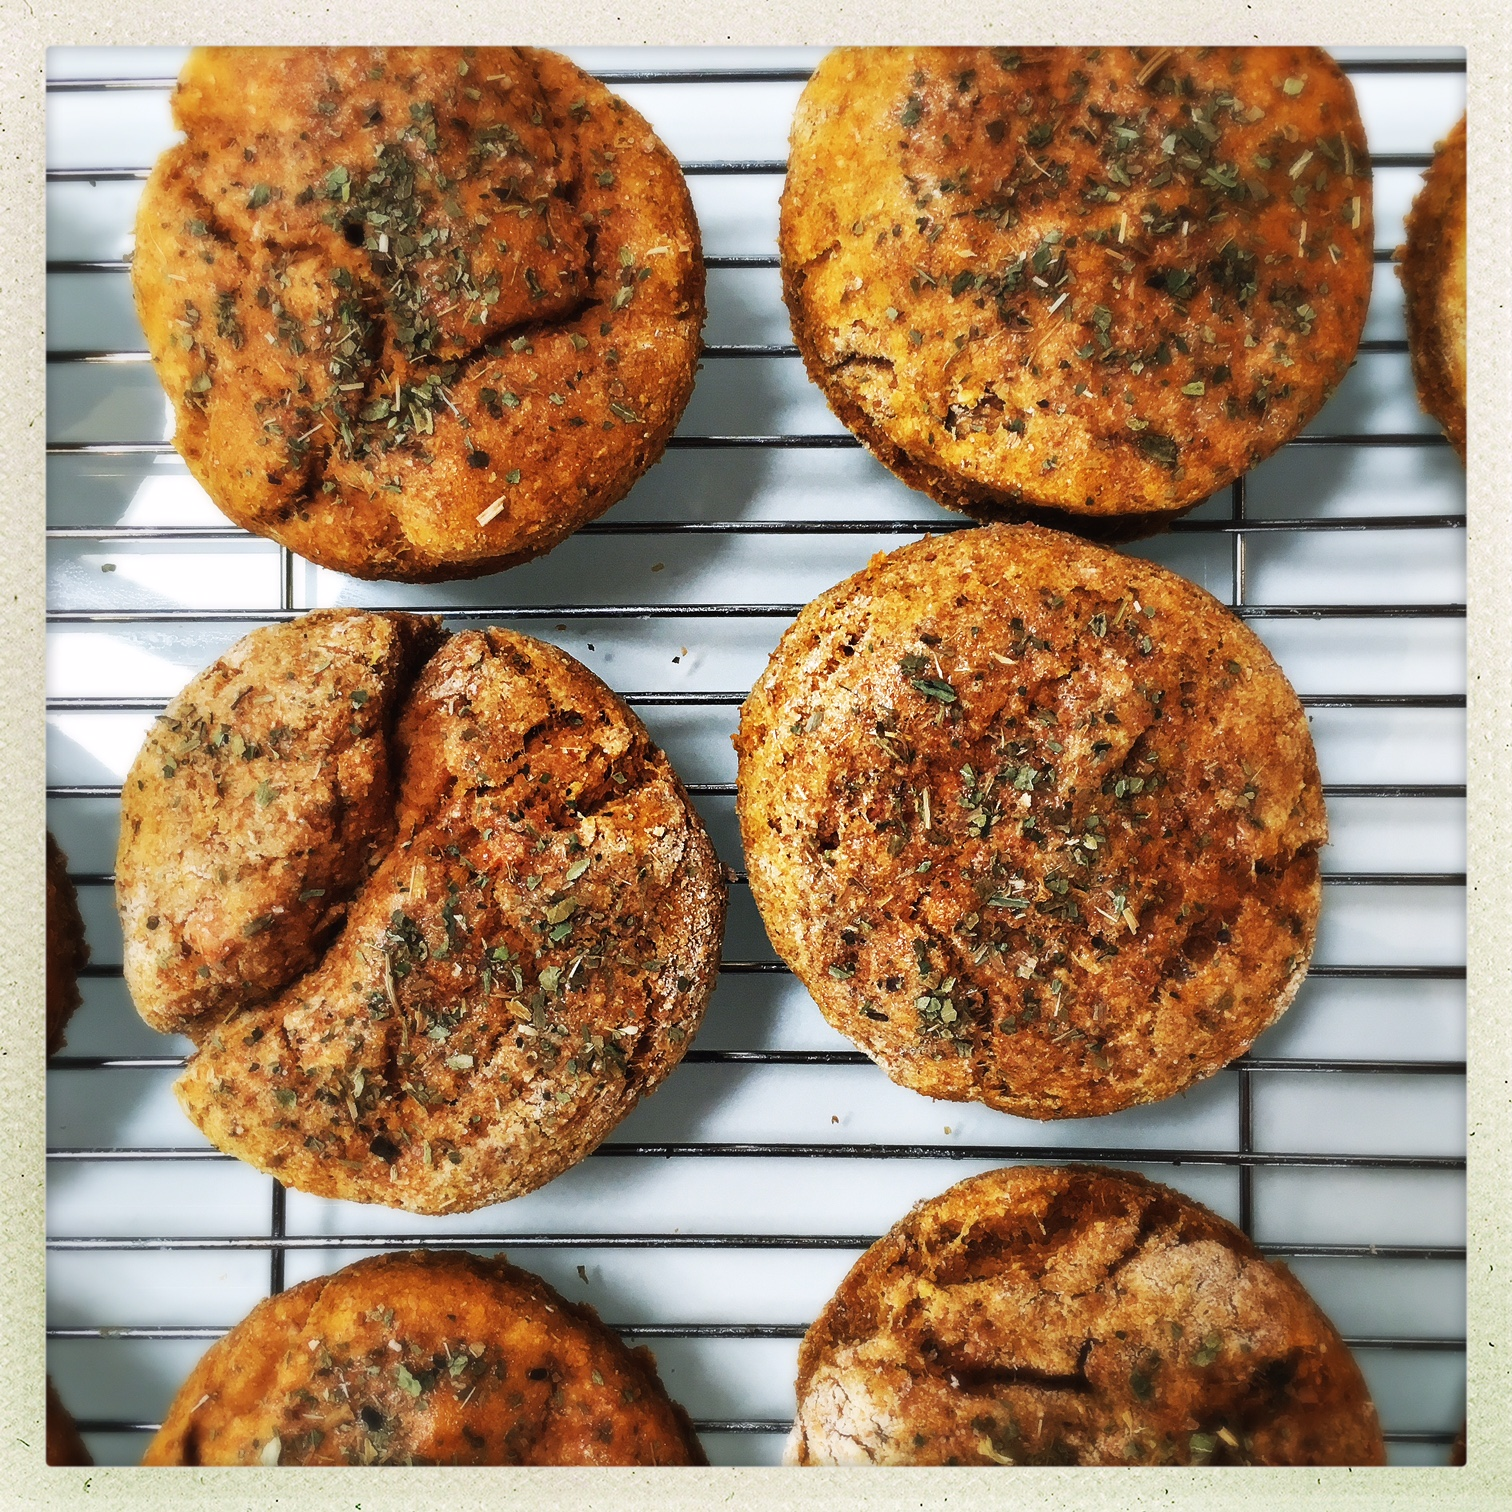 sweet potato biscuits on wire rack.jpg